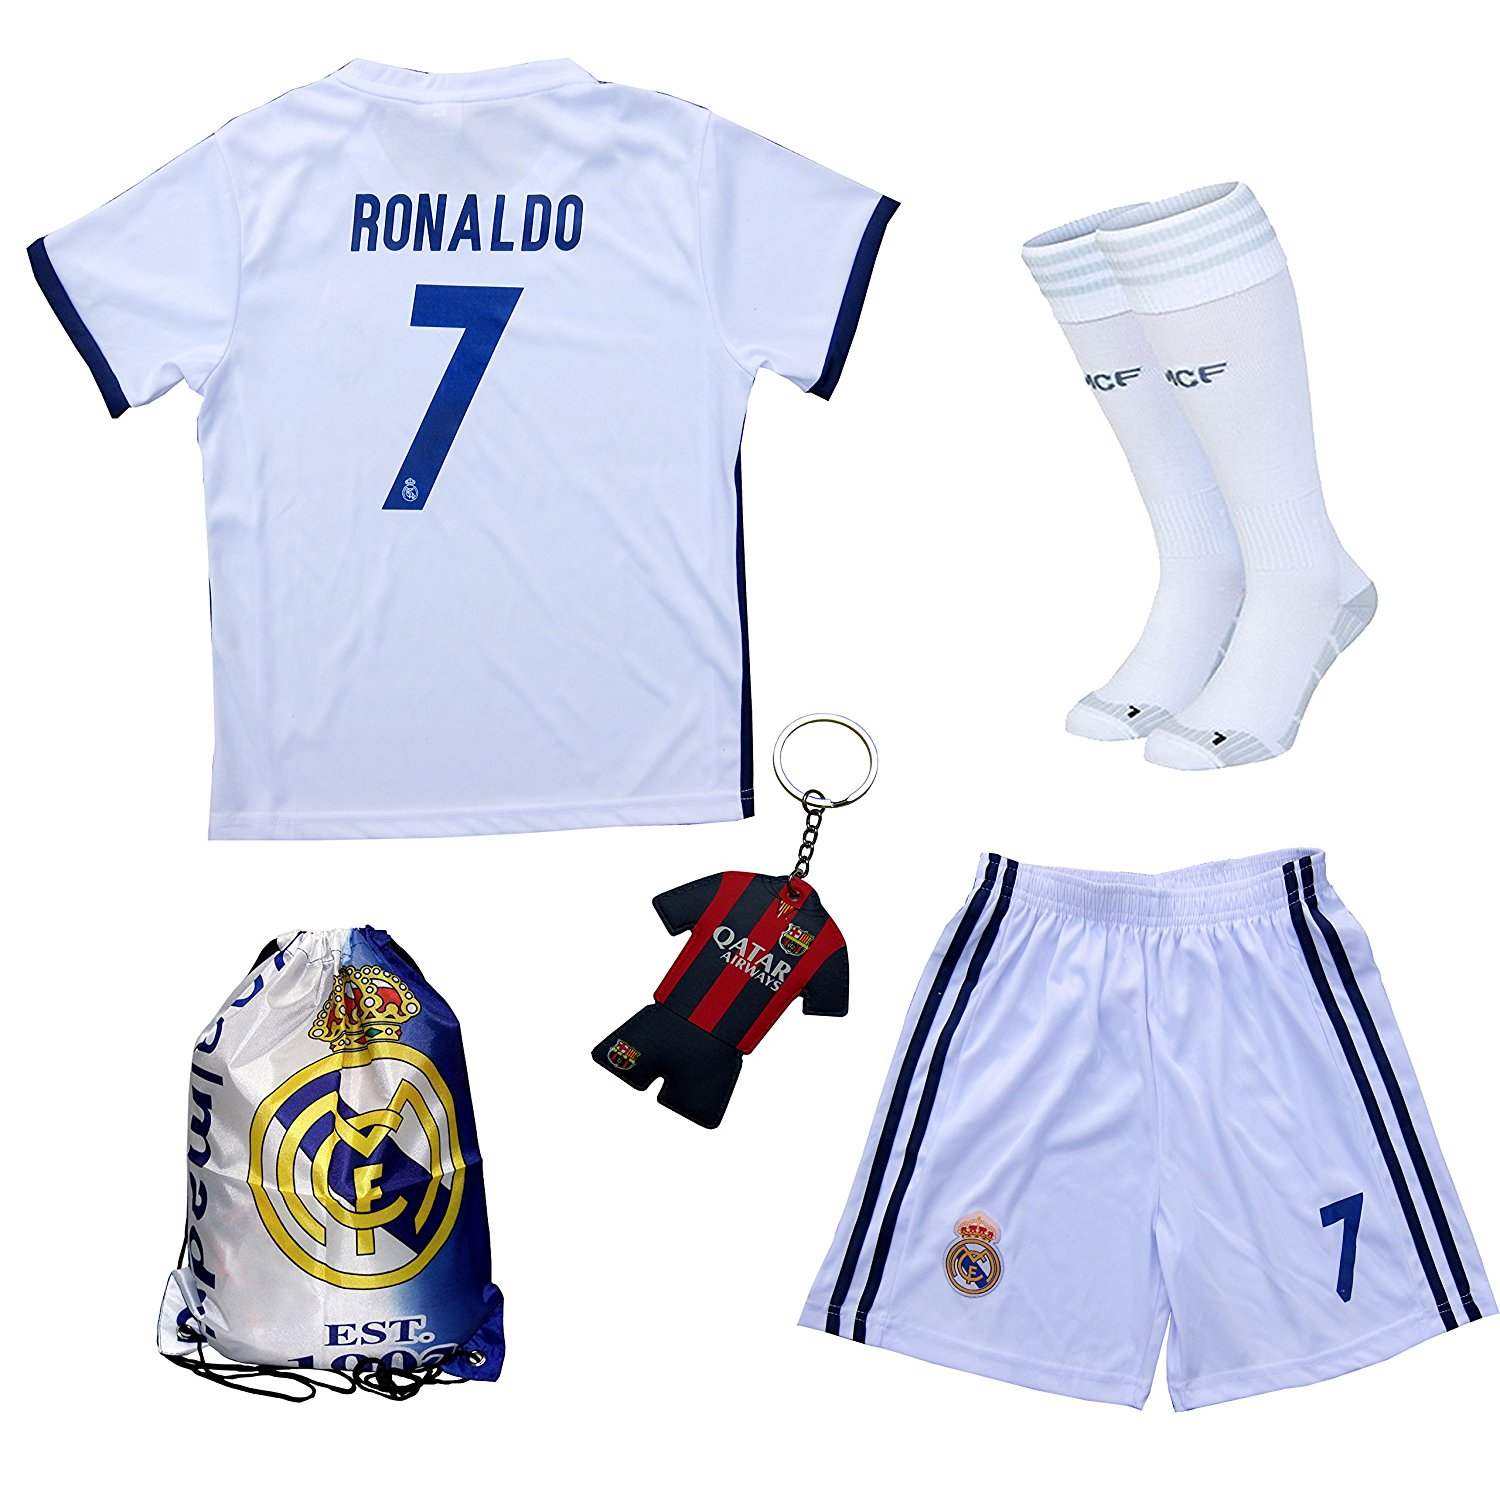 da627fe5d Get Quotations · 2017/2018 Real Madrid Cristiano Ronaldo #7 Home Football  Soccer Kids Jersey & Short